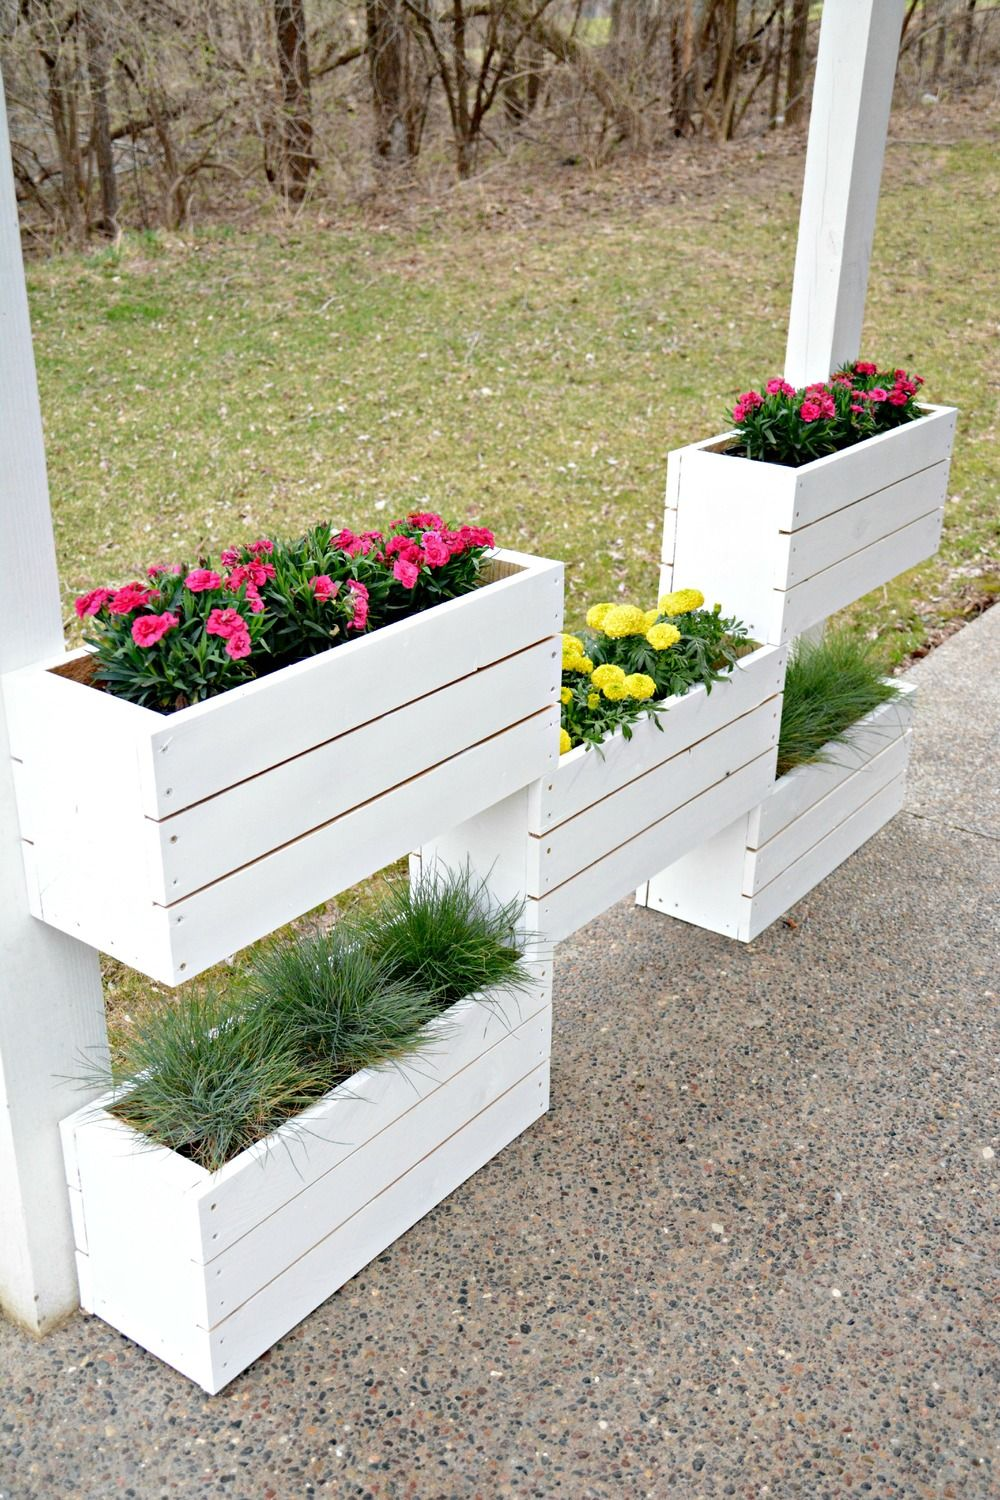 How to Build a Vertical Planter {The Home Depot DIY Workshop} | Diy ...